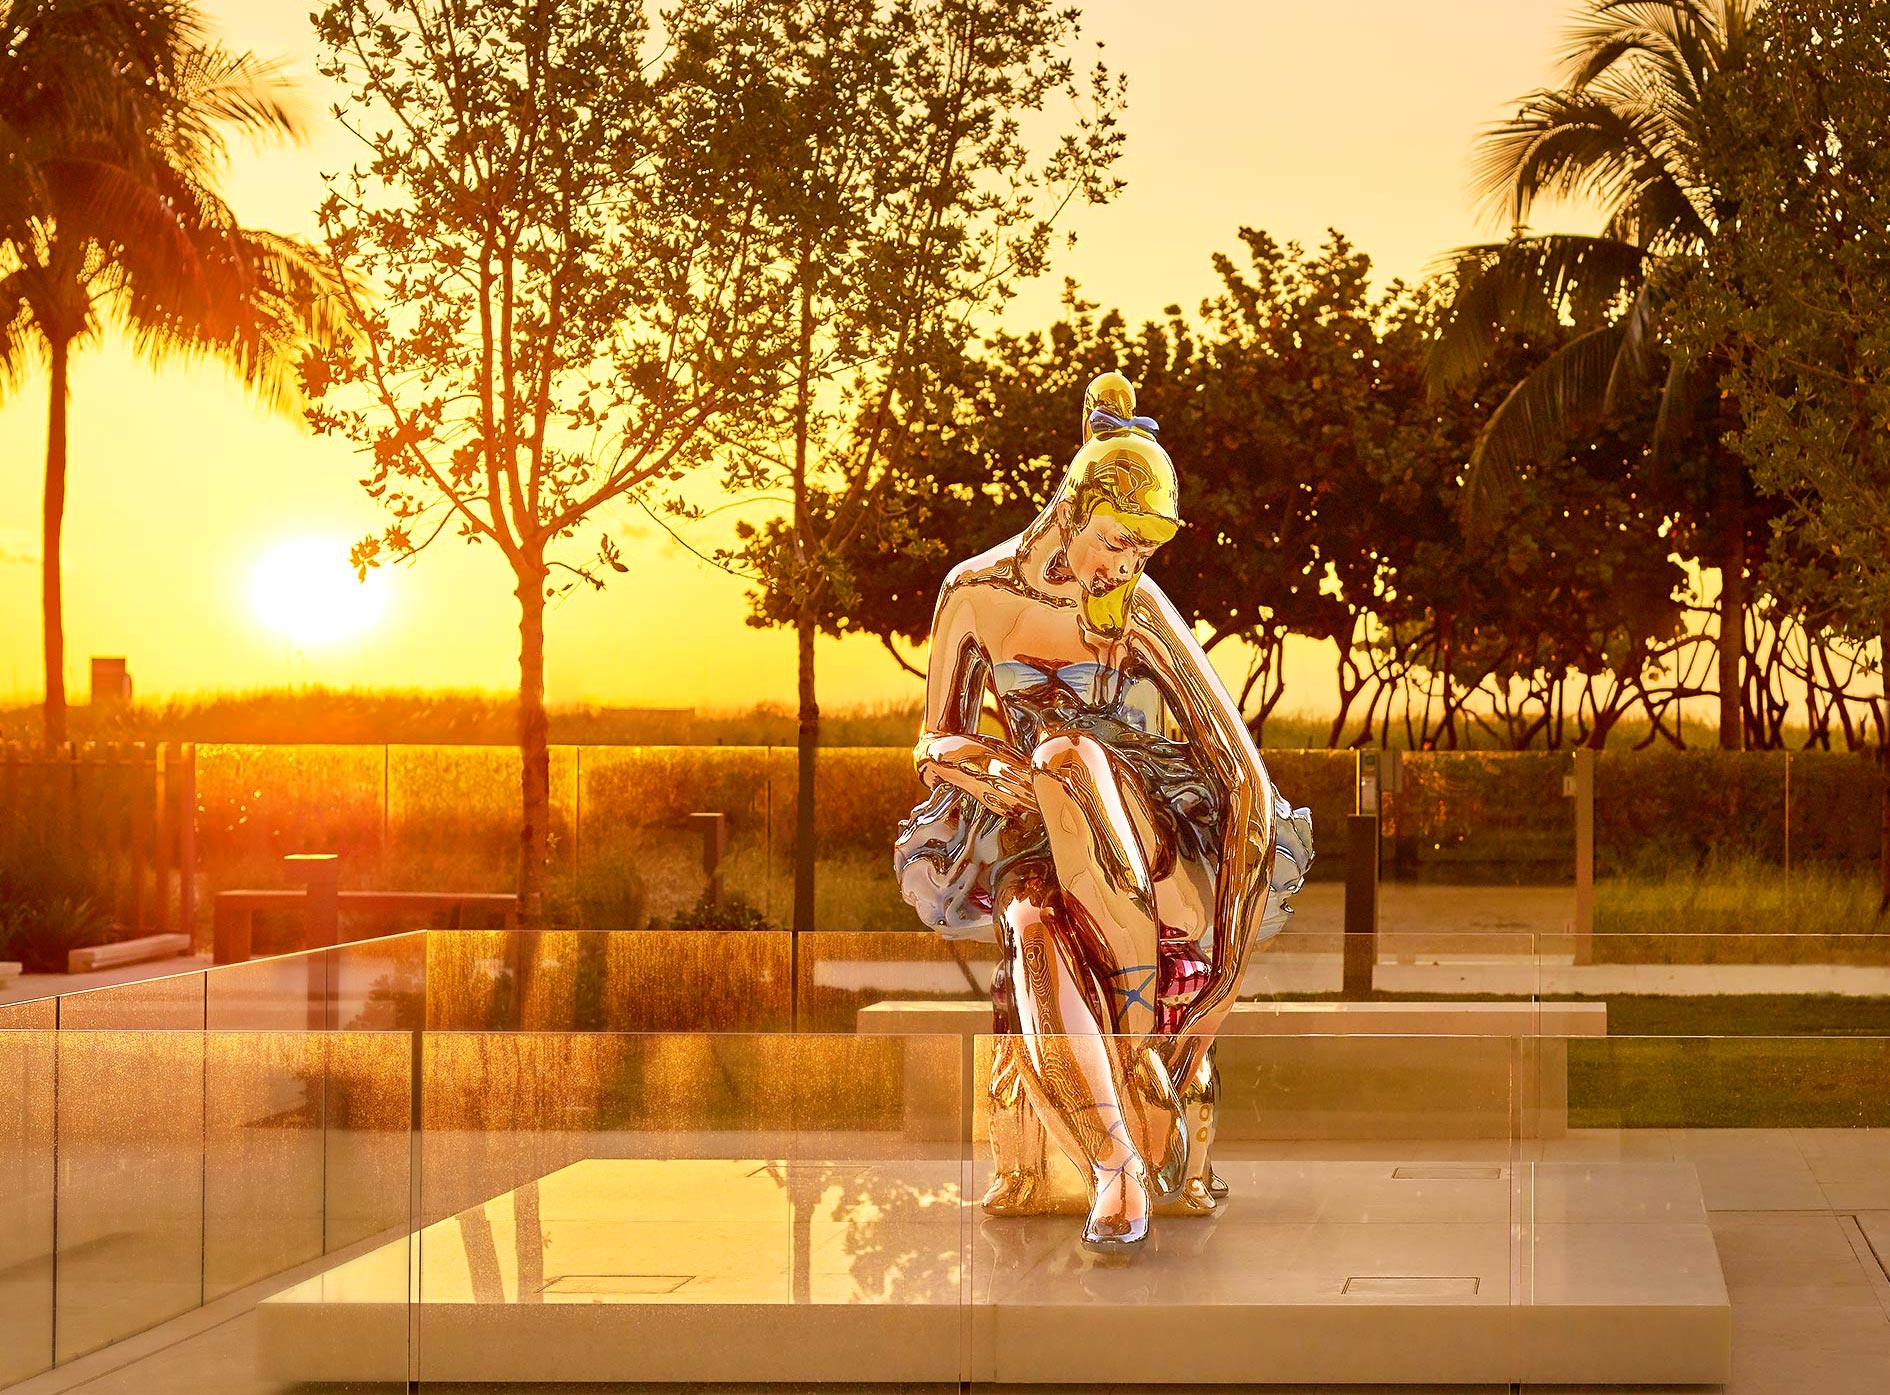 Jeff-Koons-Ballerina-Sculpture-Bal-Harbour-Florida-Sunrise-Resort